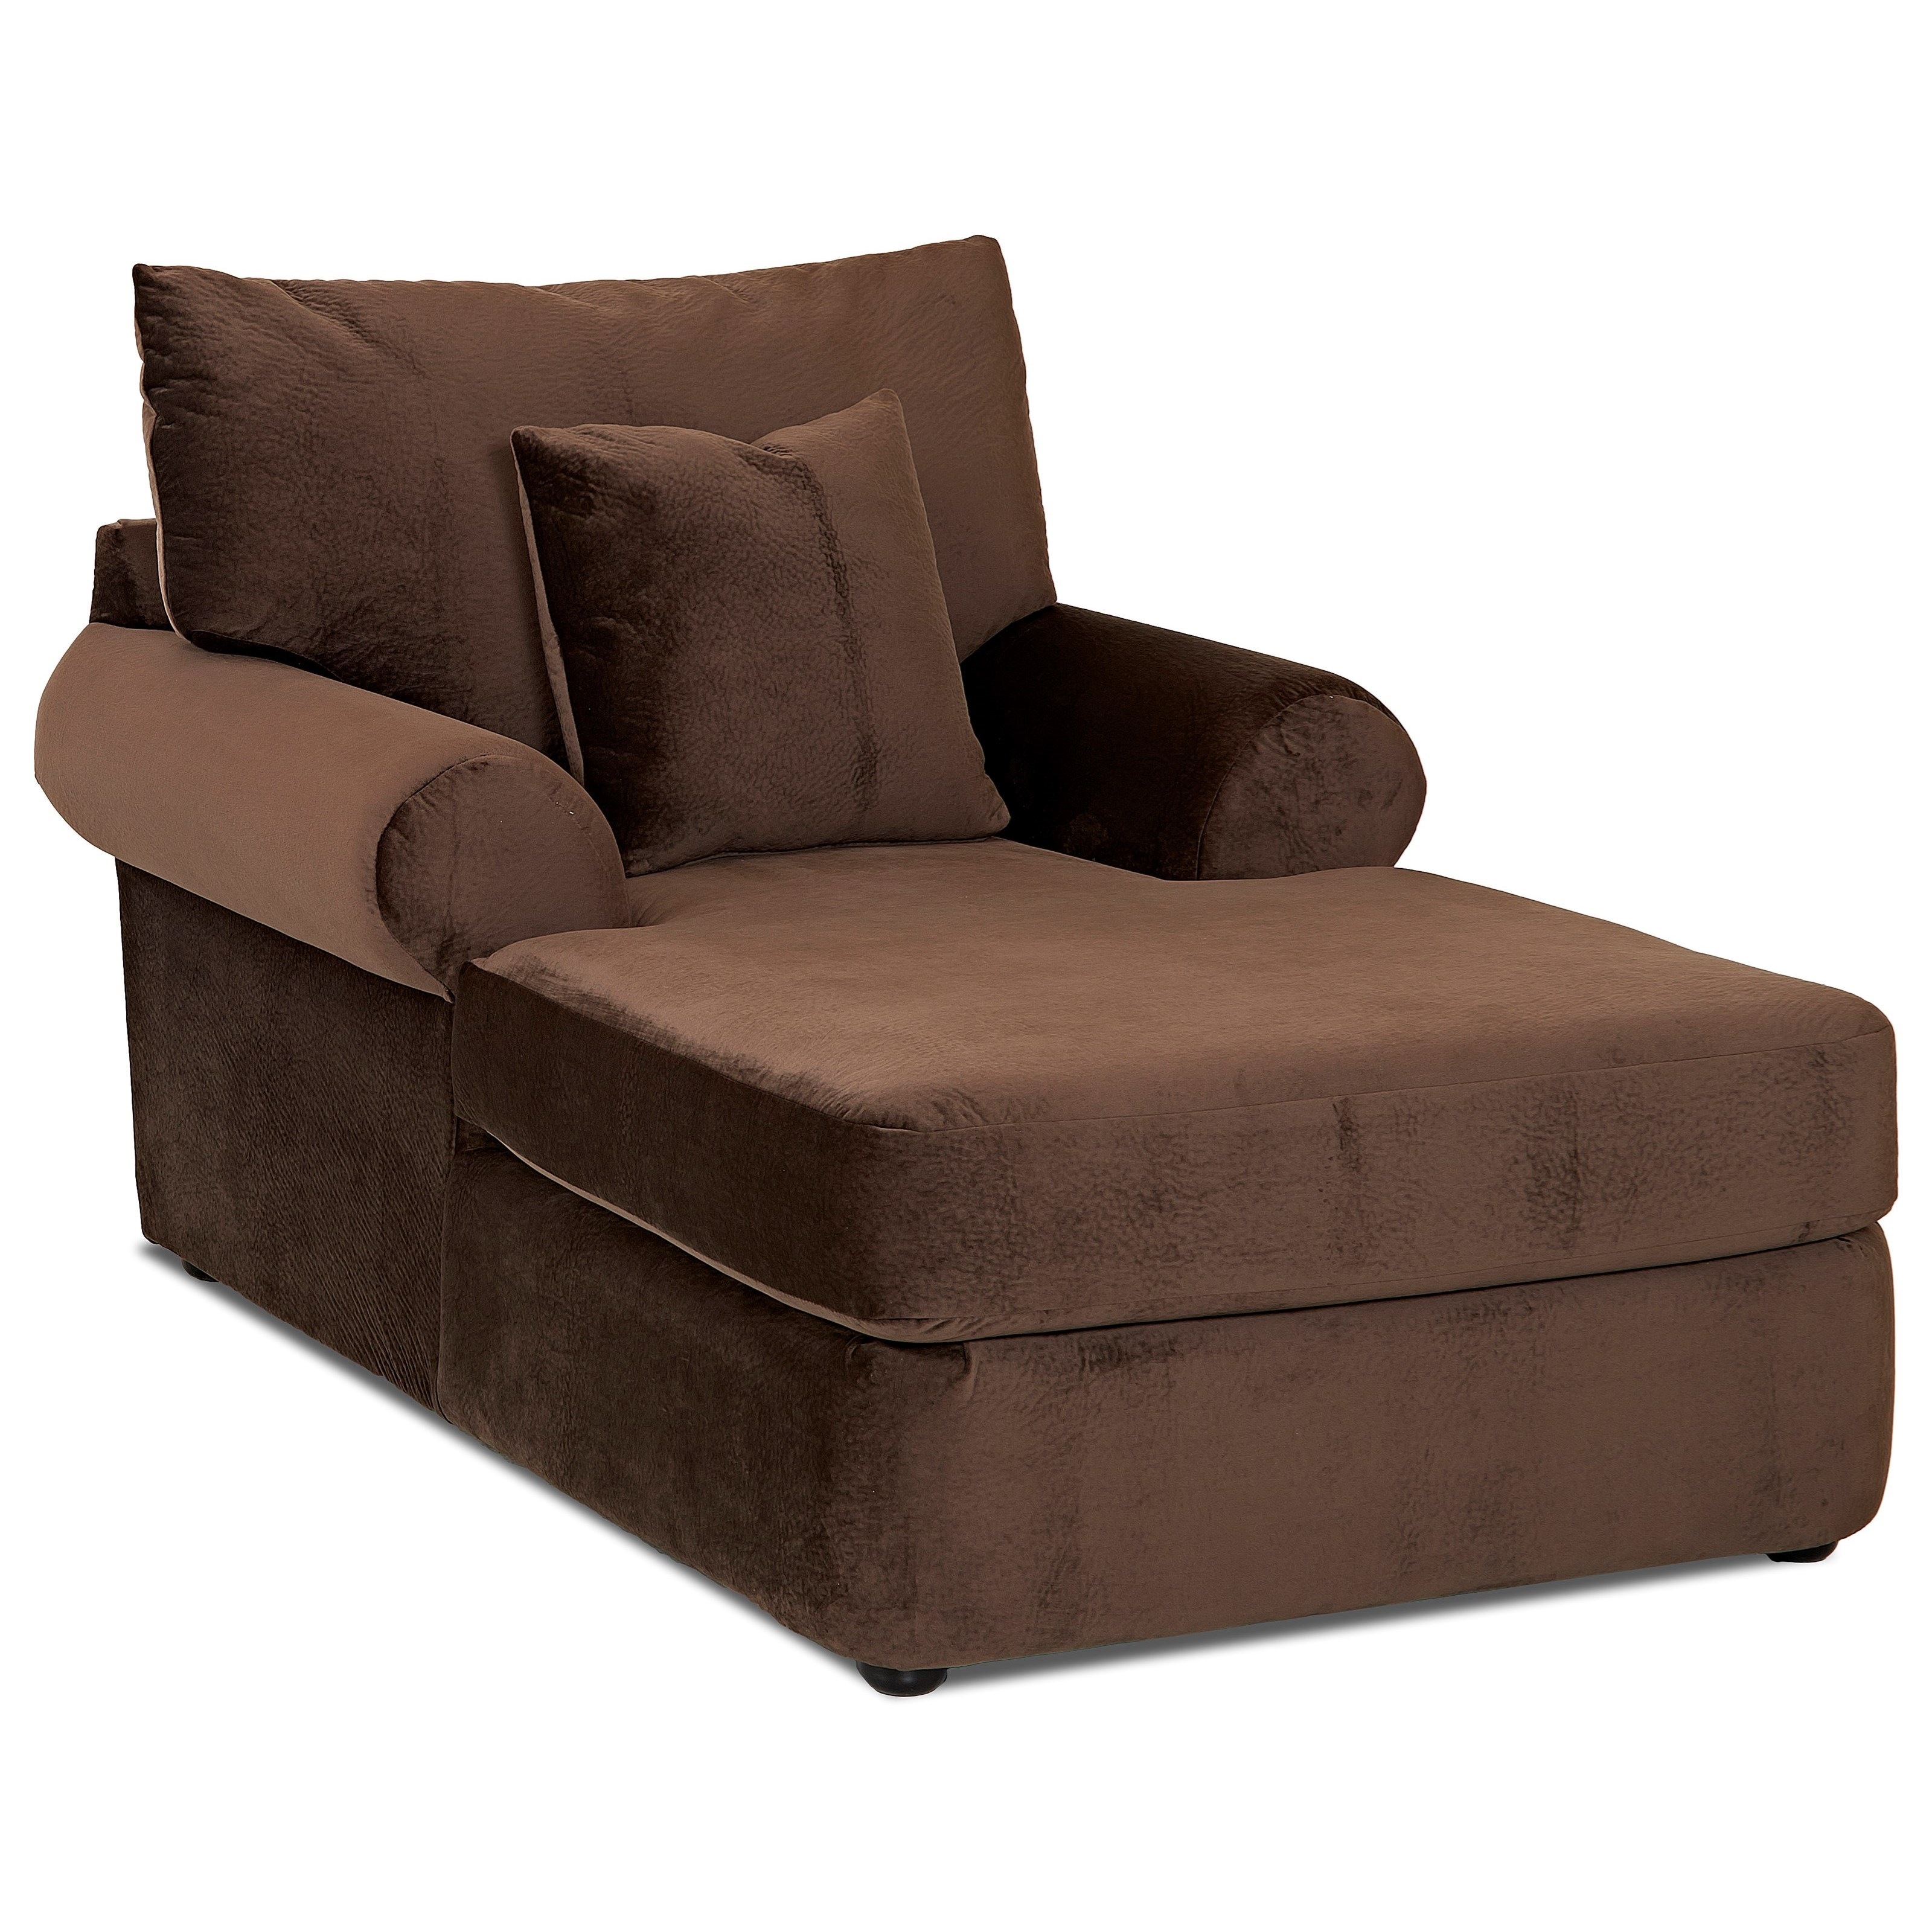 Klaussner Cora K41200 Chase Casual Plush Chaise Lounge